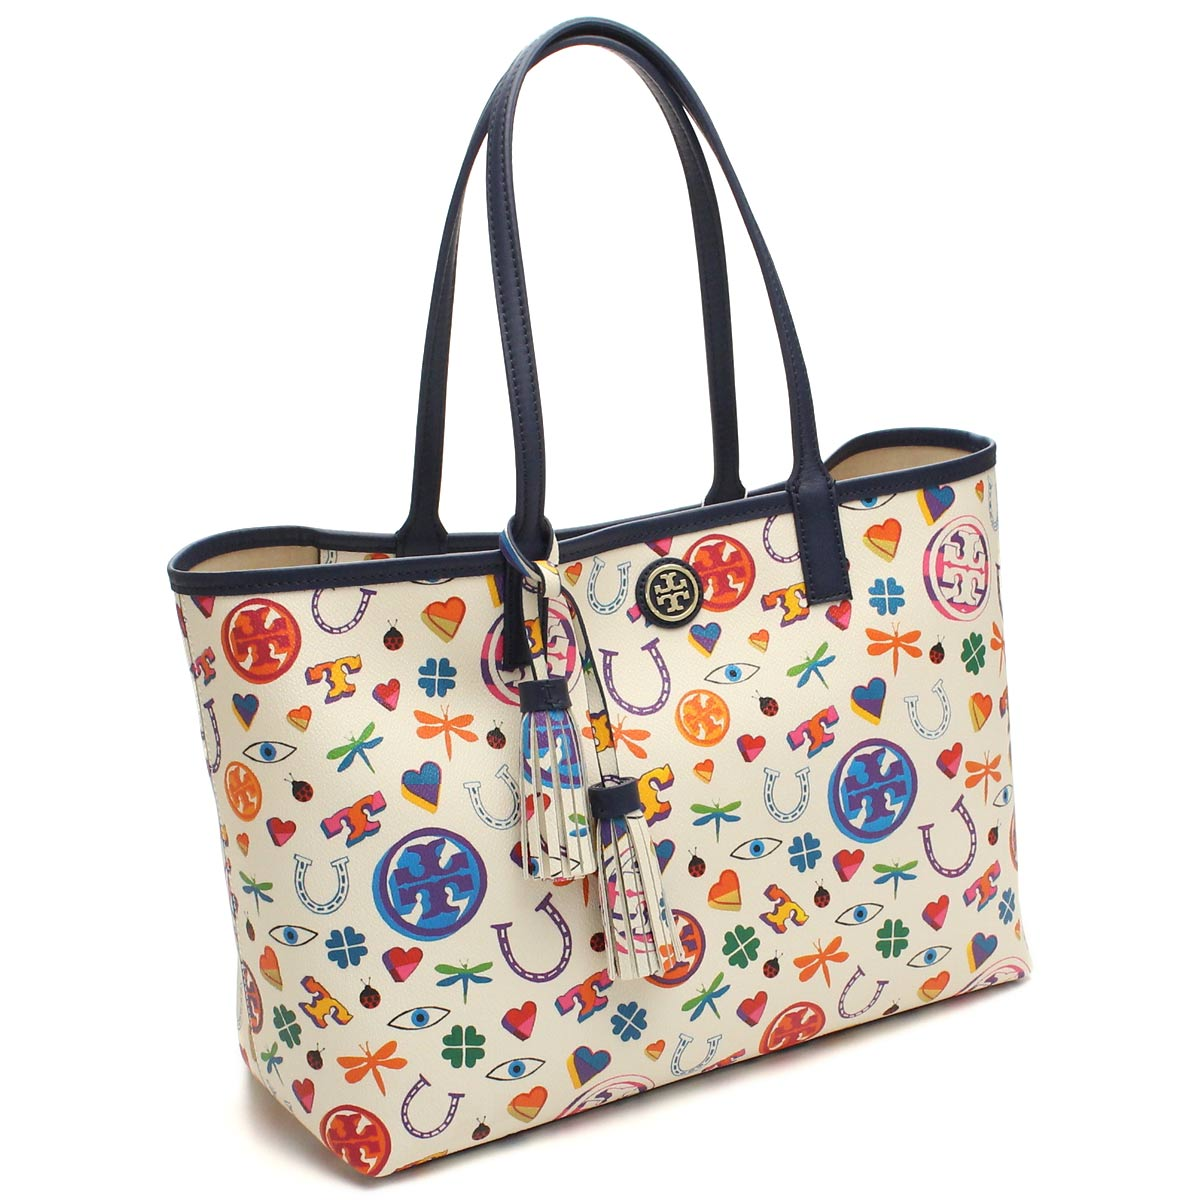 e30ce4254f0 Bighit The total brand wholesale  Tory Burch (TORY BURCH) tote bag  41149508-960 NEW IVORY LUCK PRINT white series multi-color( taxfree send by  ...